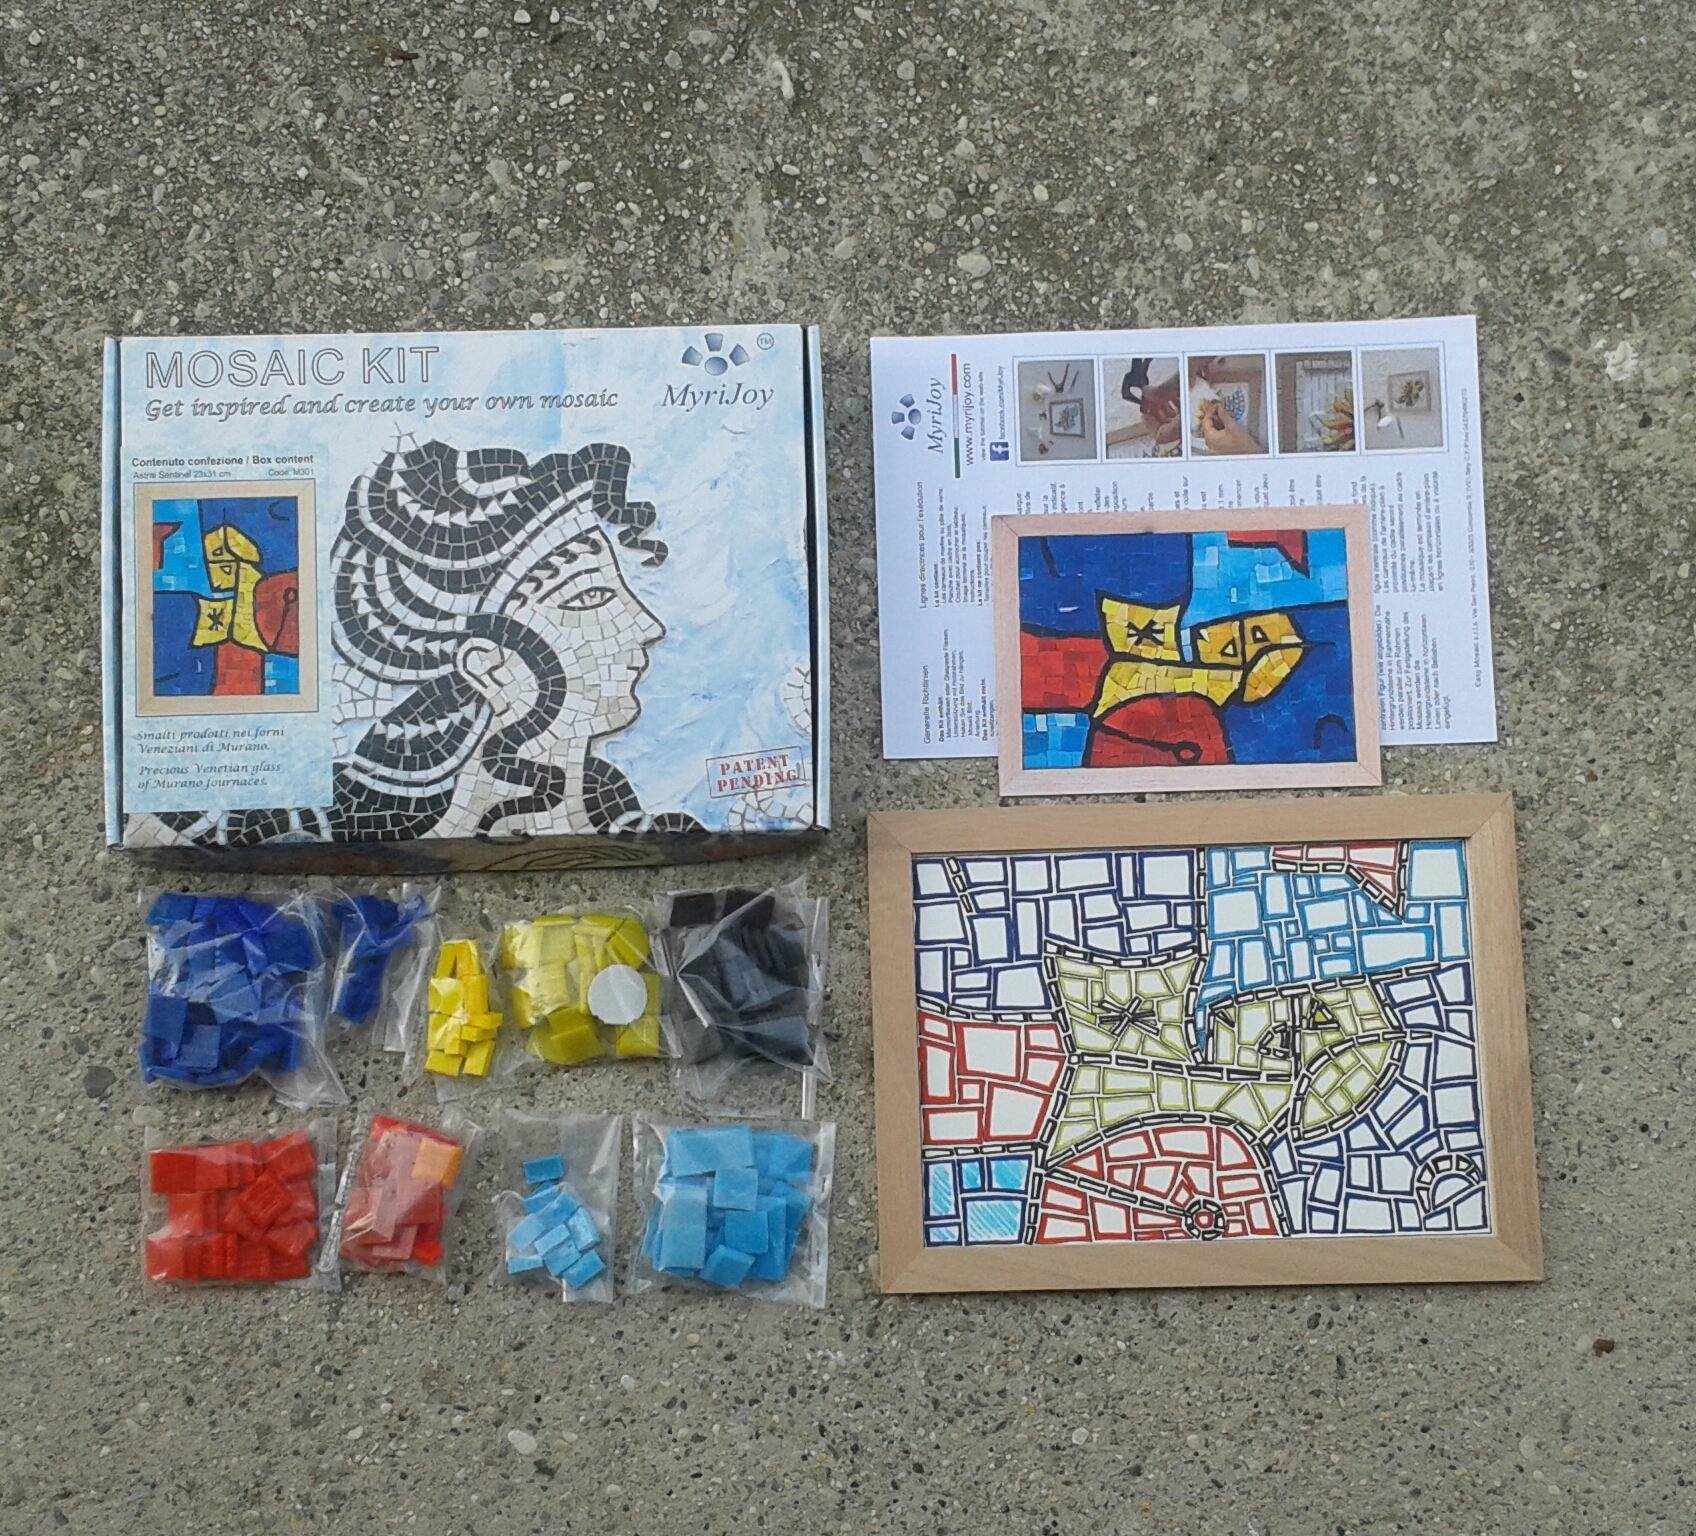 Mosaics Modern Art Gift Kit For Her – Stained Glass Mosaic Tile Inside Current Mosaic Art Kits For Adults (View 18 of 20)